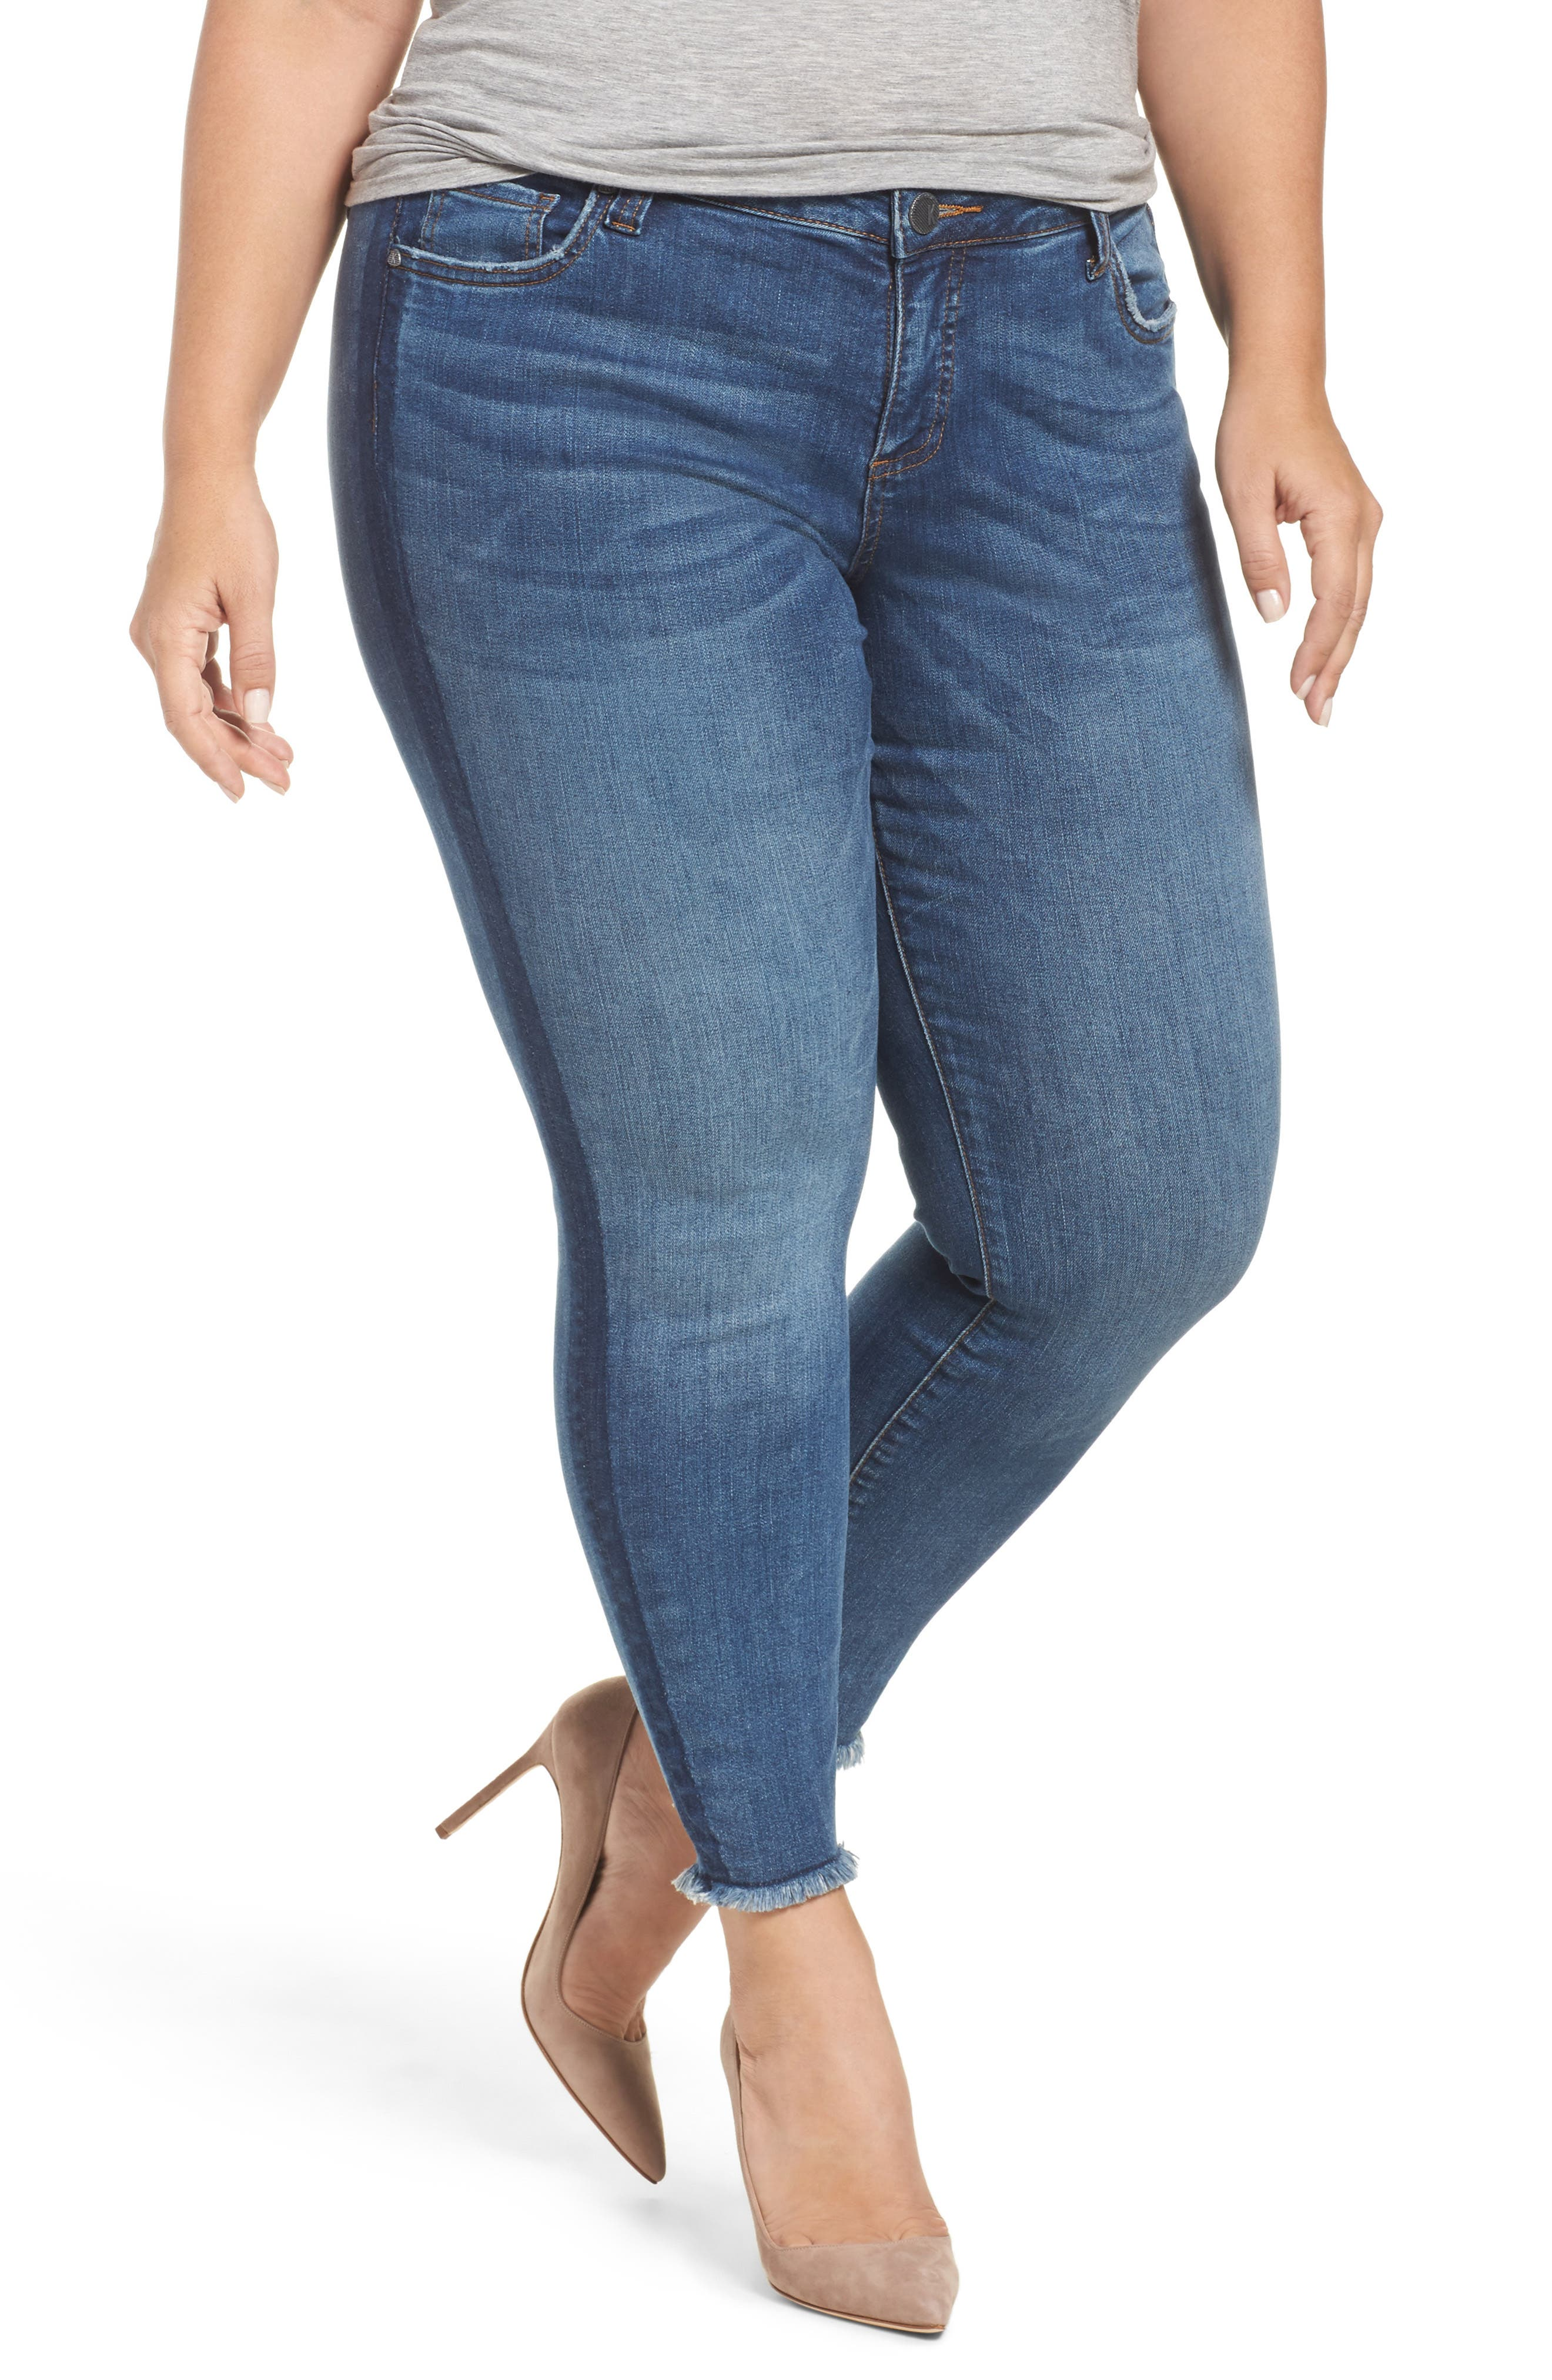 Alternate Image 1 Selected - KUT from the Kloth Connie Frayed Skinny Ankle Jeans (Prolific) (Plus Size)